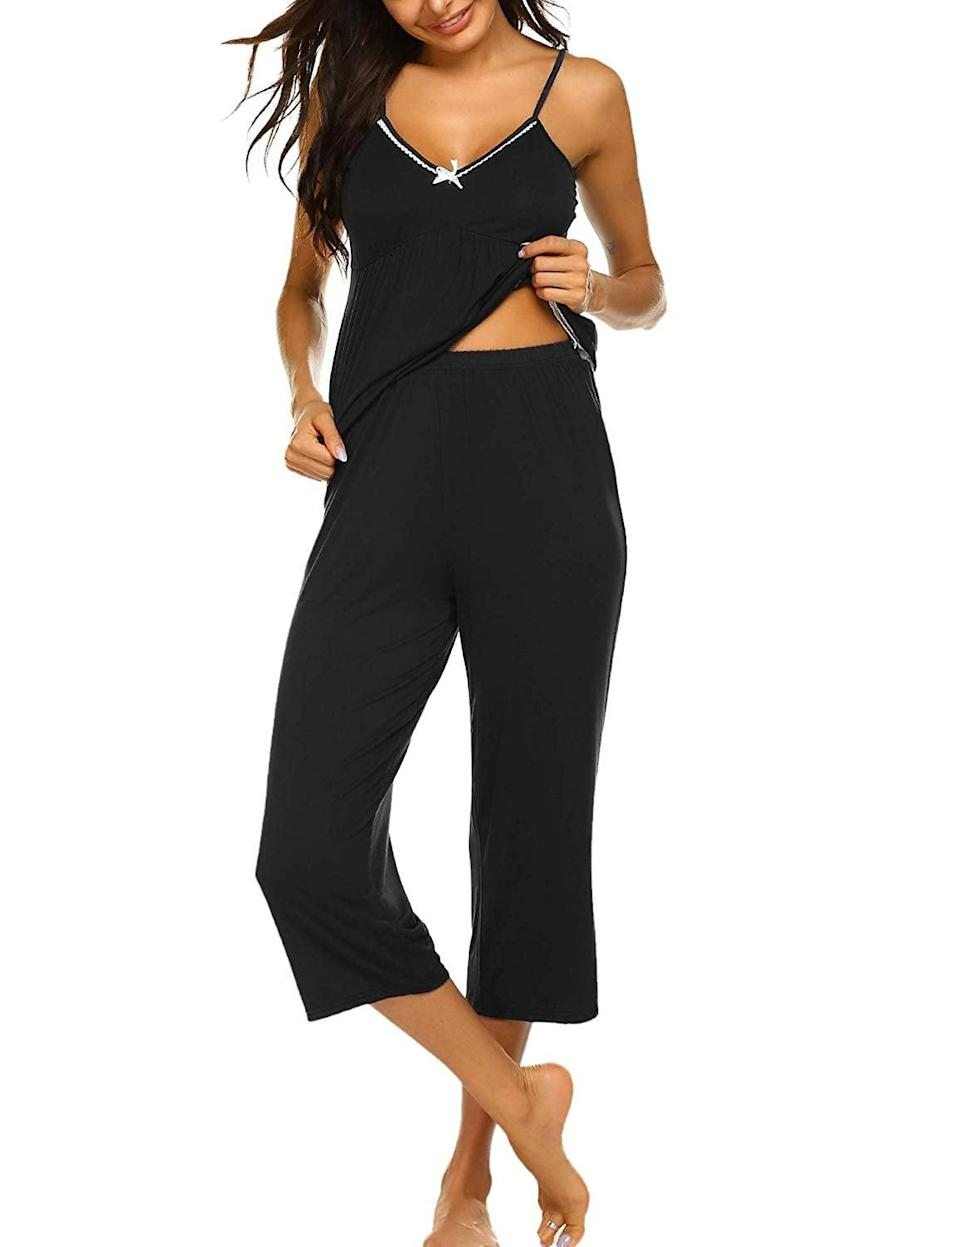 <p>Slip into this <span>Ekouaer Pajamas Set</span> ($29) on any day, and you might forget to shower (don't worry, we won't tell). It looks that comfortable, plus you can pair the embellished top with high-waisted jeans for a cute outing.</p>